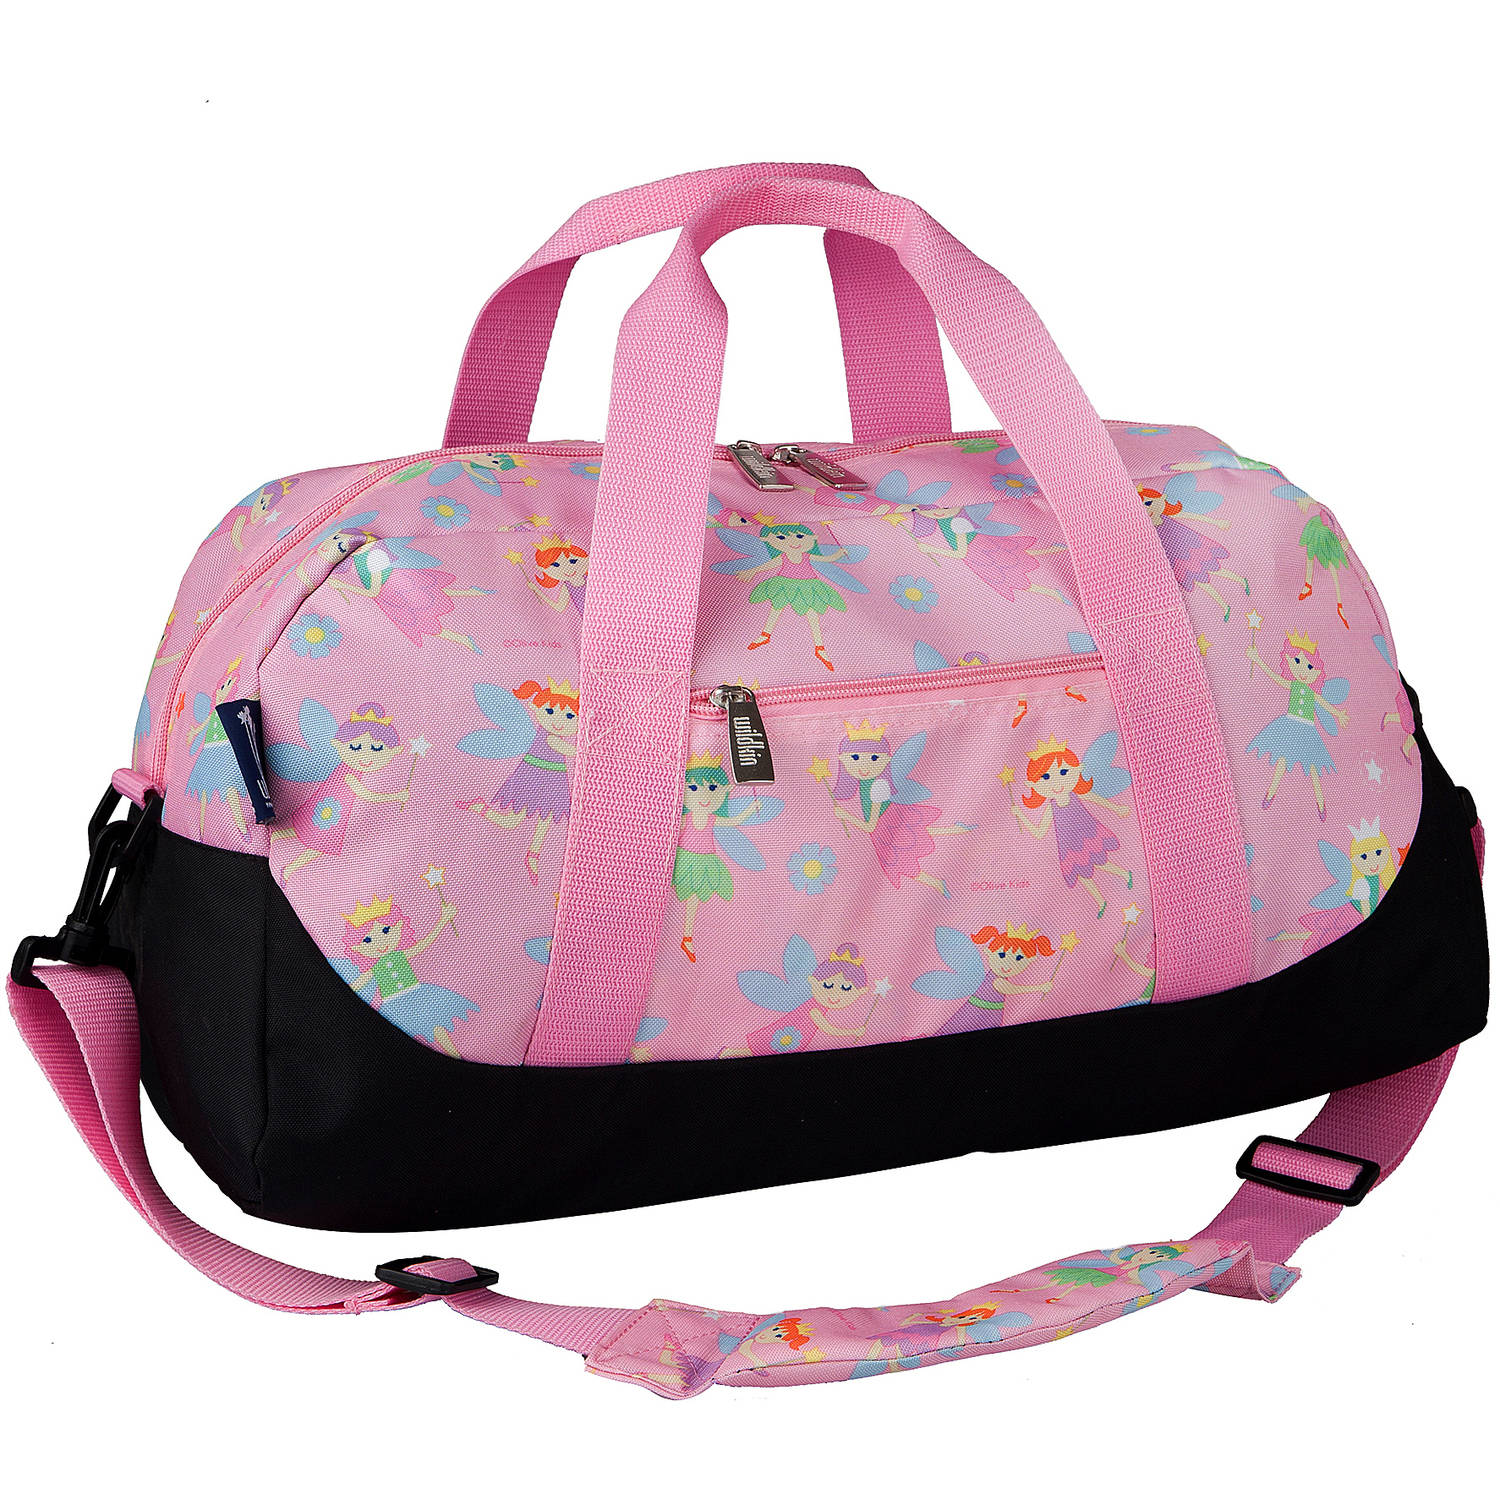 Wildkin Fairy Princess Overnighter Duffel Bag by Wildkin